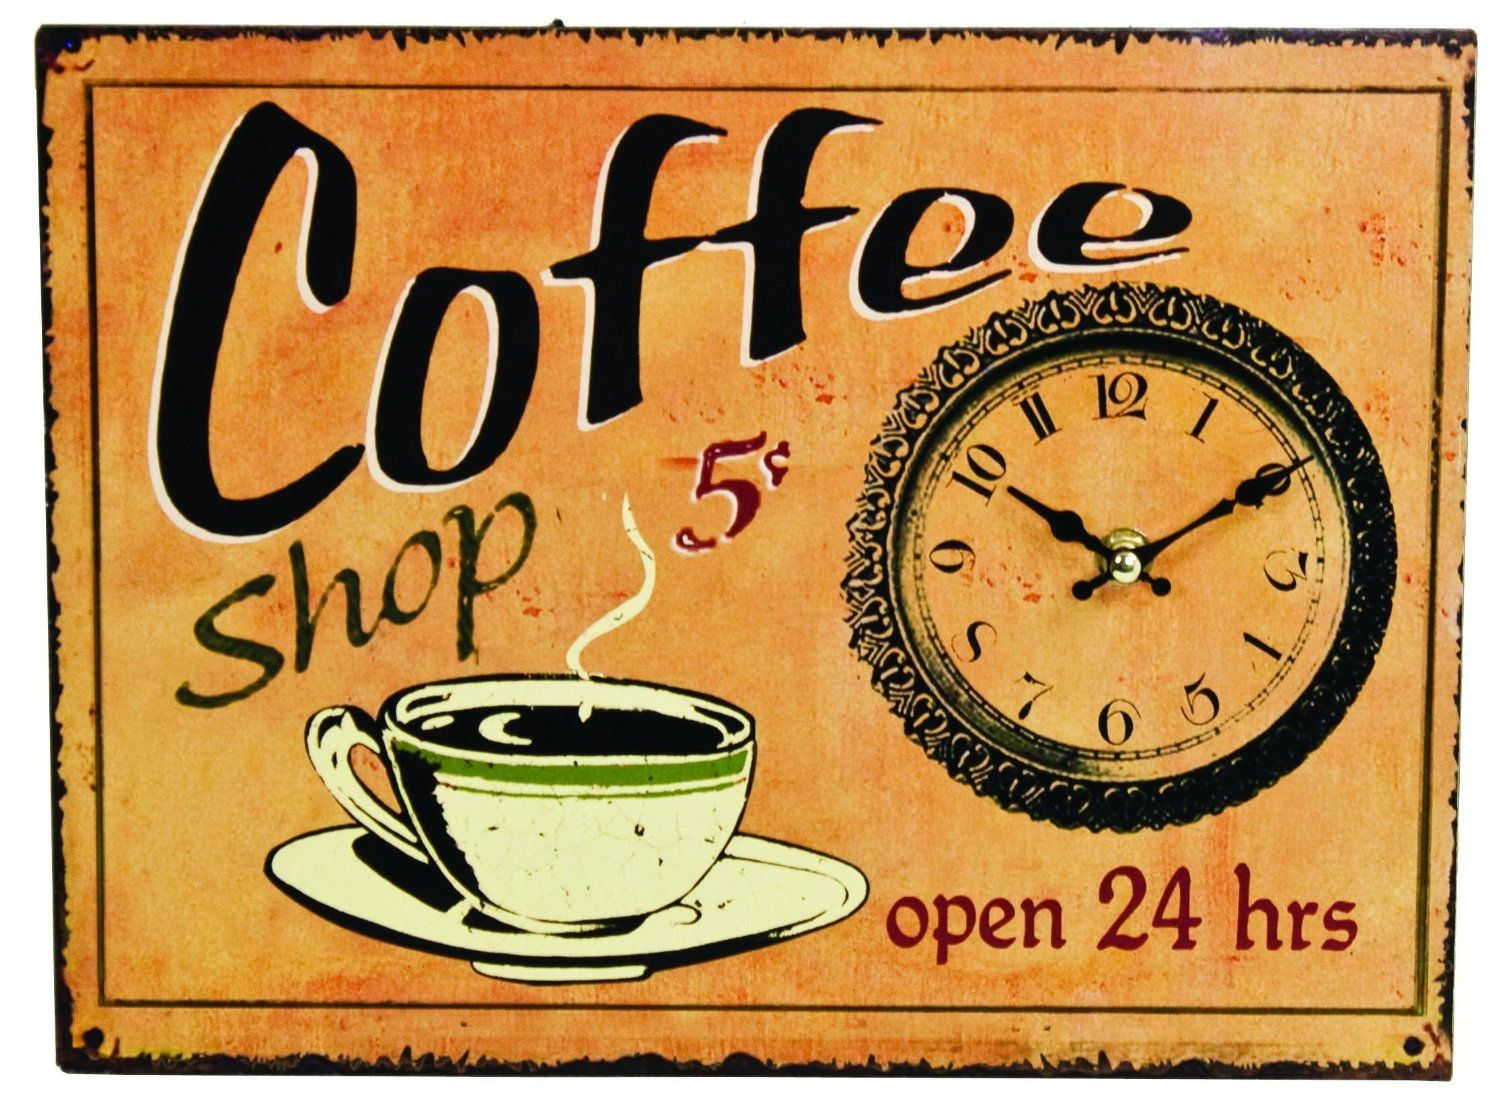 Coffee shop open 24 hrs coffee shop signs vintage